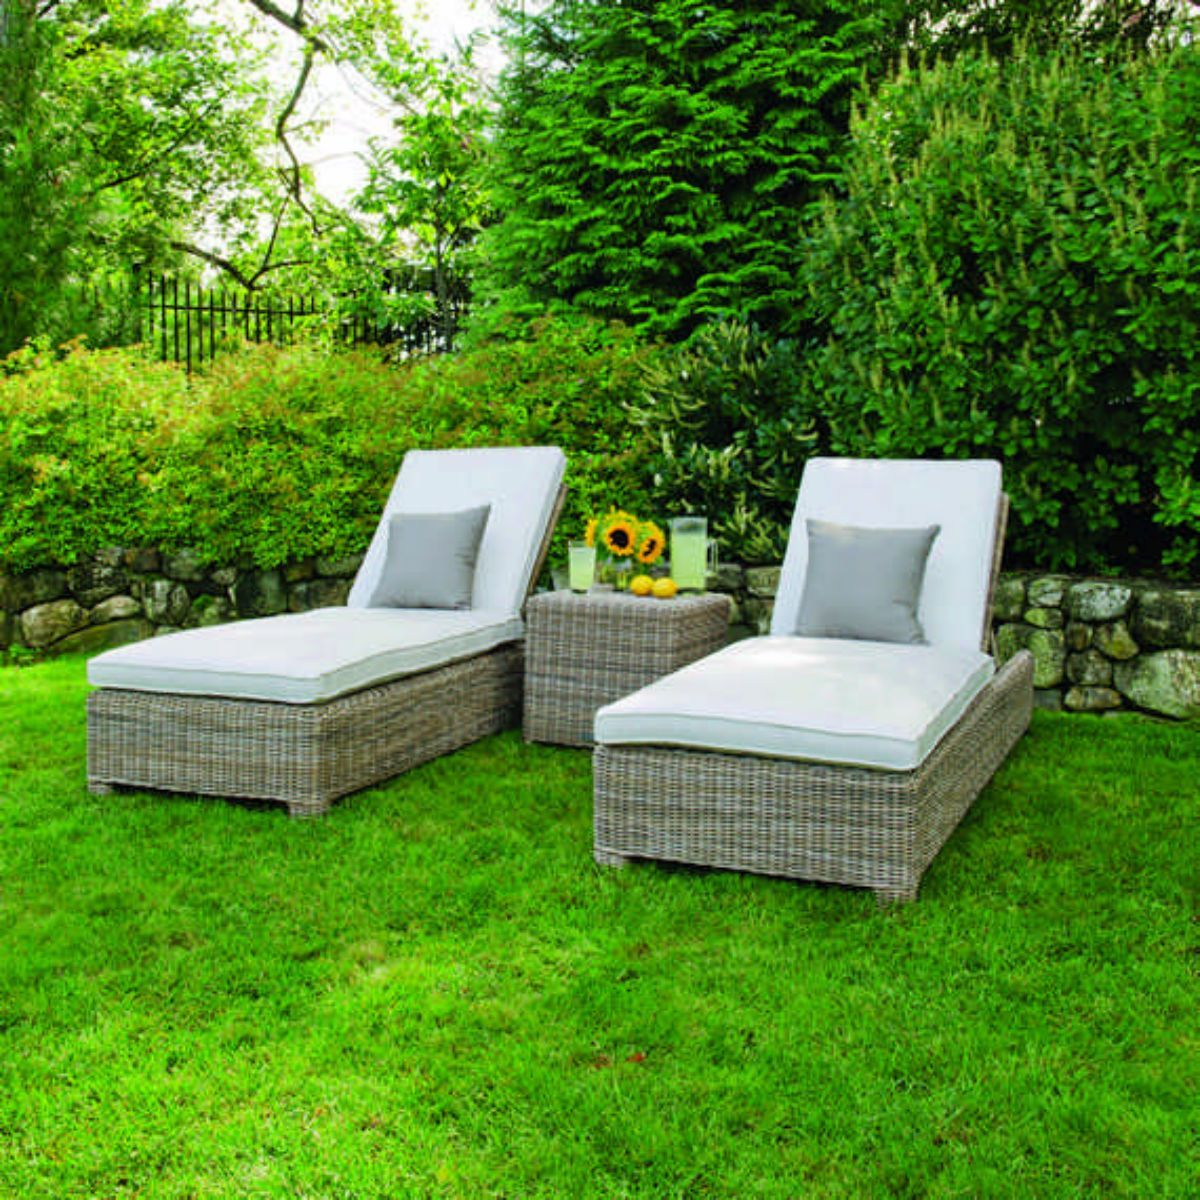 Sag Harbor Adjustable Chaise Lounge w/ Wheels | Coastal outdoor ...